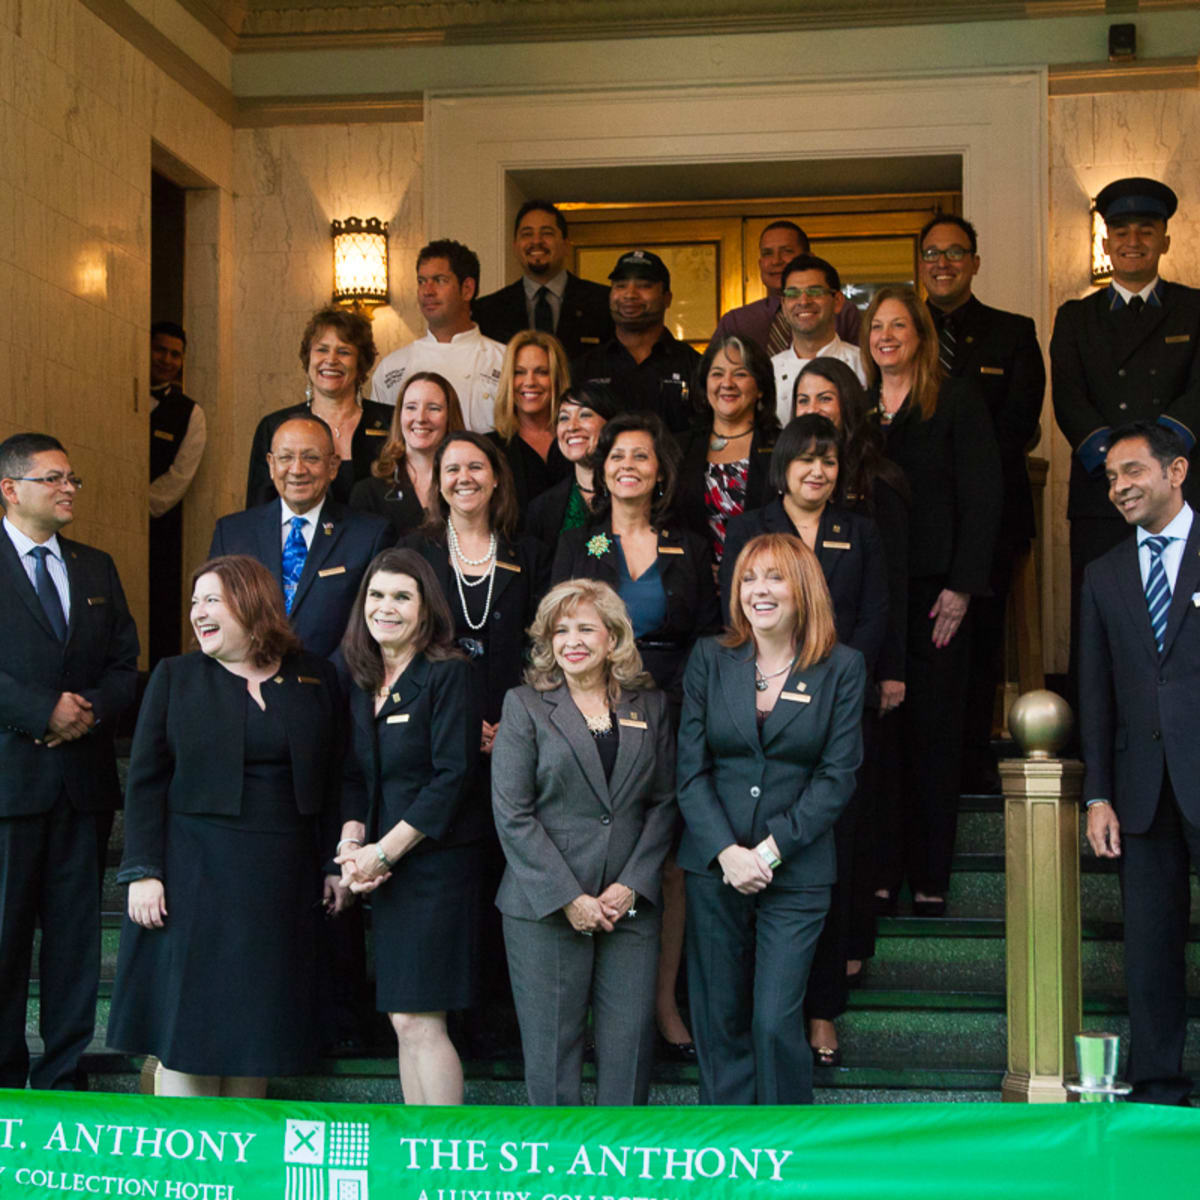 The Saint Anthony Hotel San Antonio Grand Reopening 2015 Luxury Collection management team